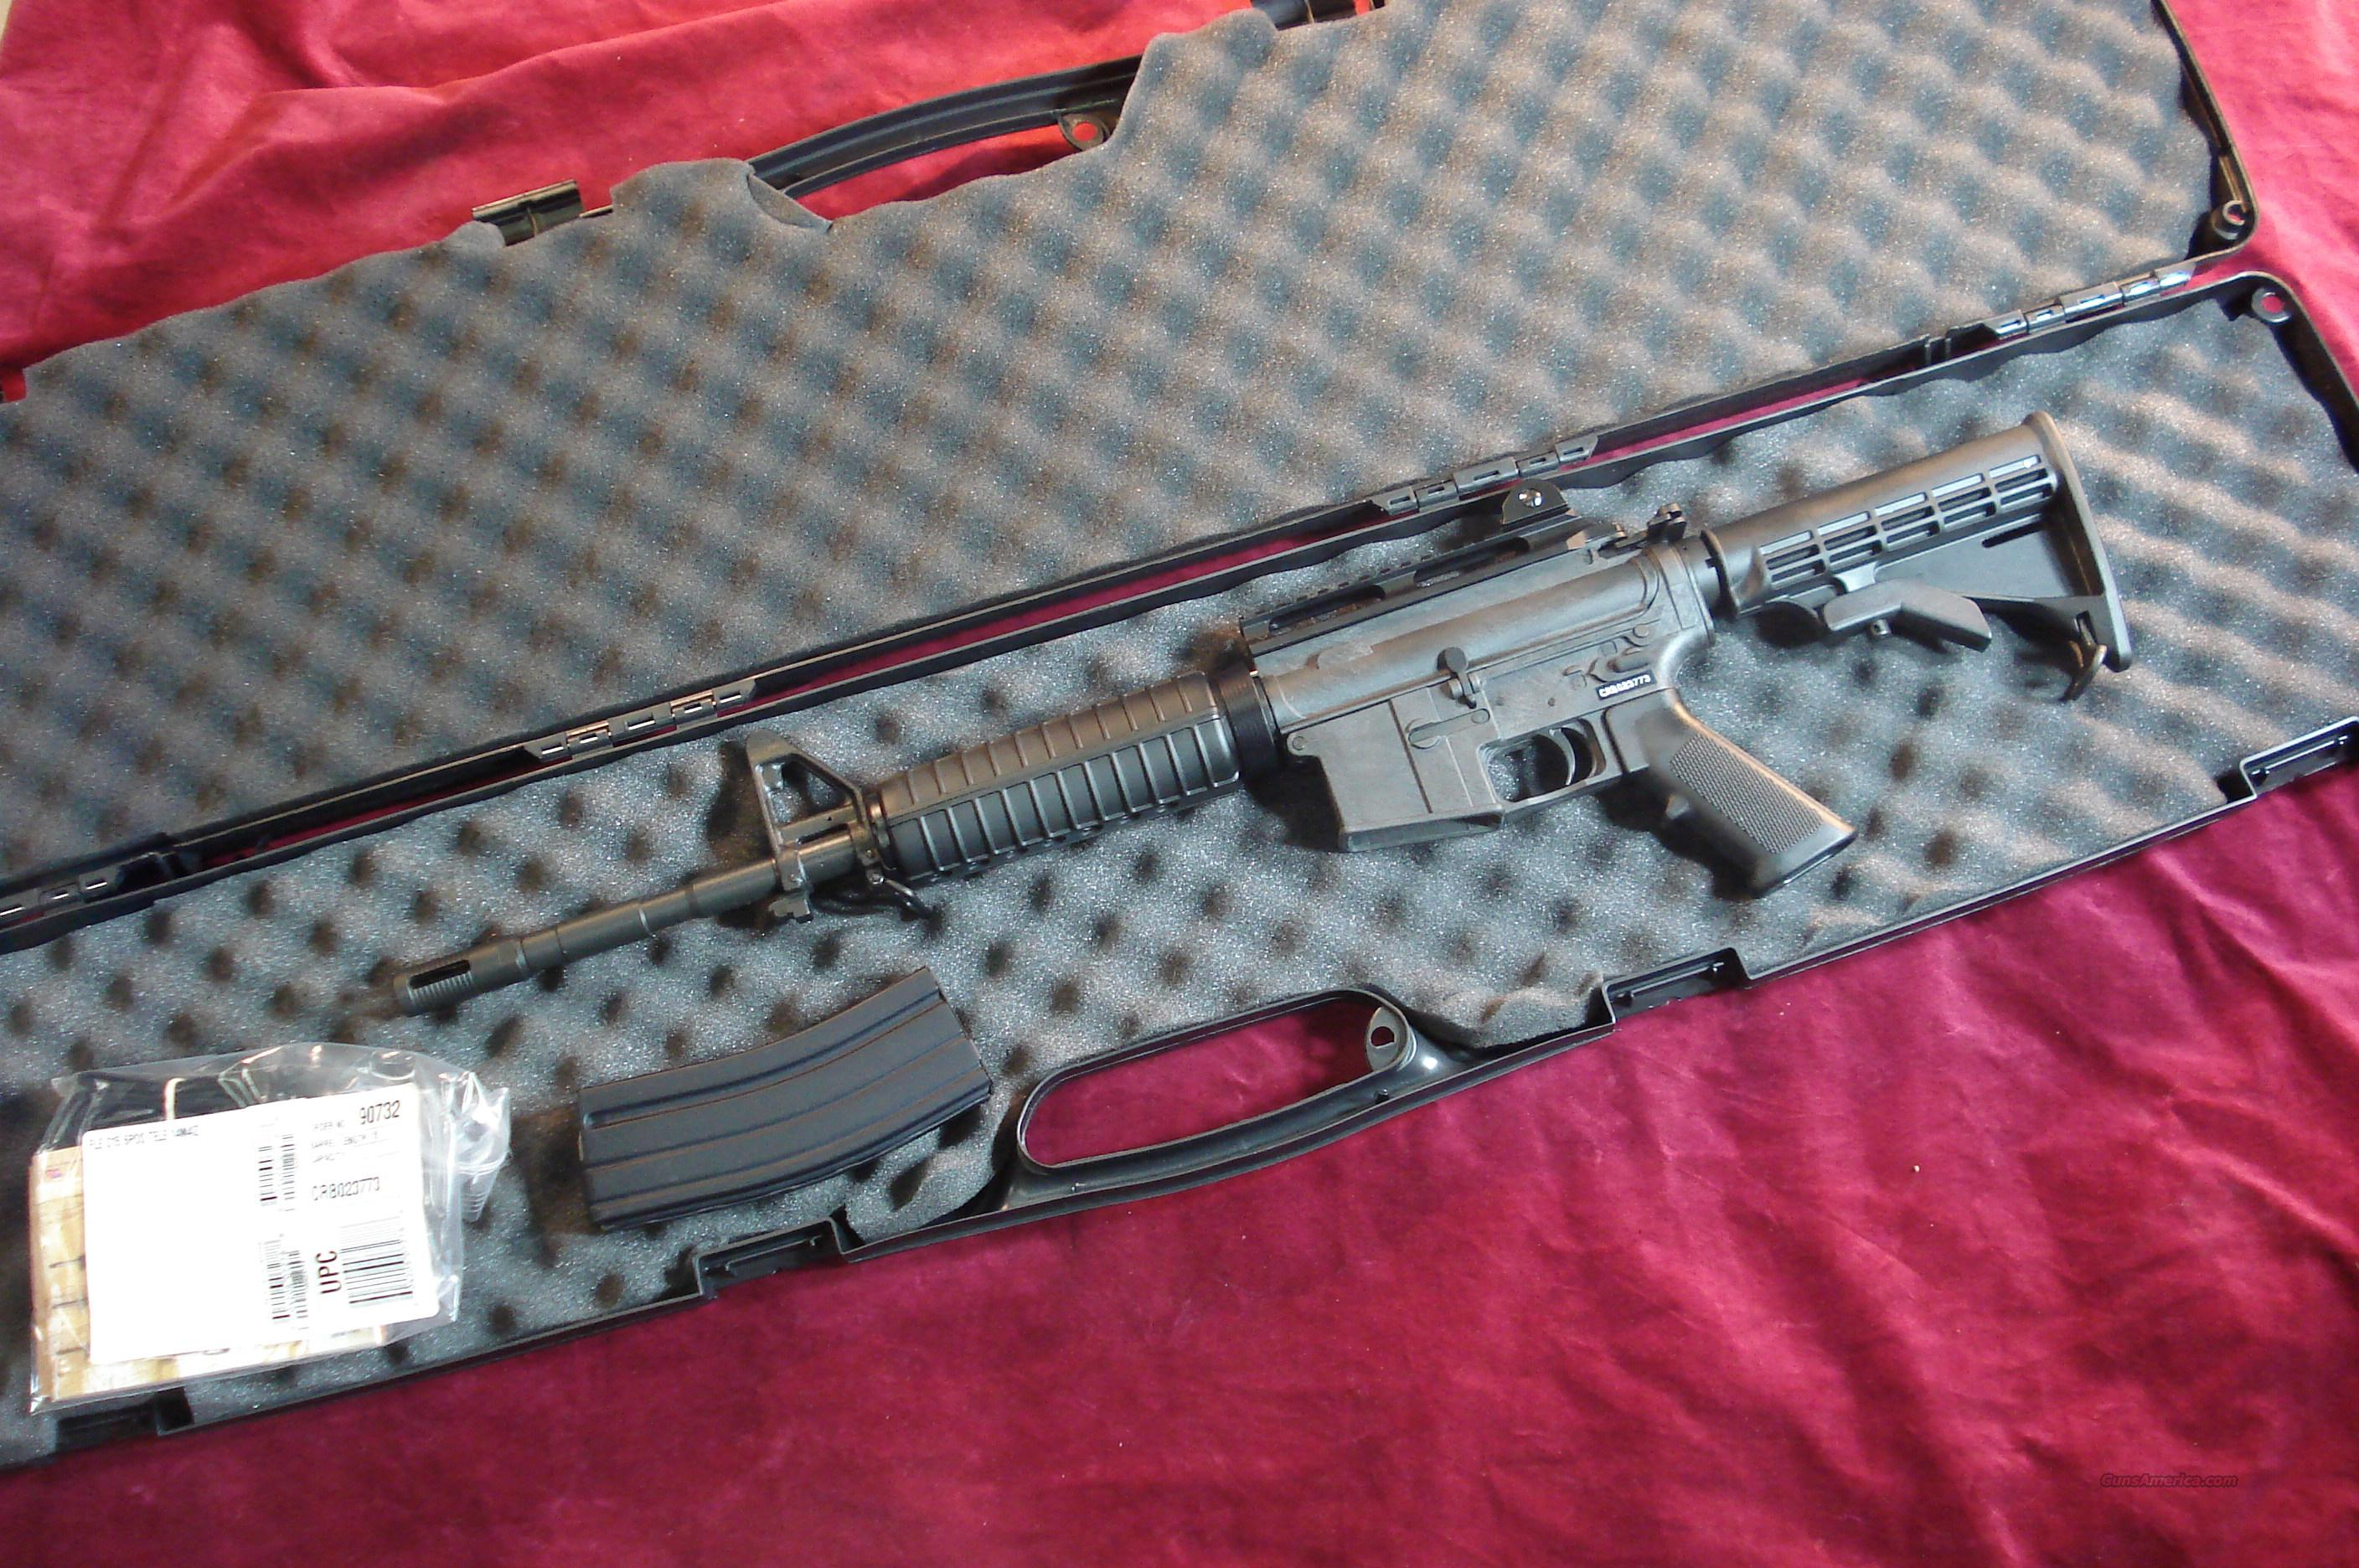 BUSHMASTER CARBON 15 5.56/223CAL. WITH  RAISED RAIL AND REAR SIGHT NEW  Guns > Rifles > Bushmaster Rifles > Complete Rifles